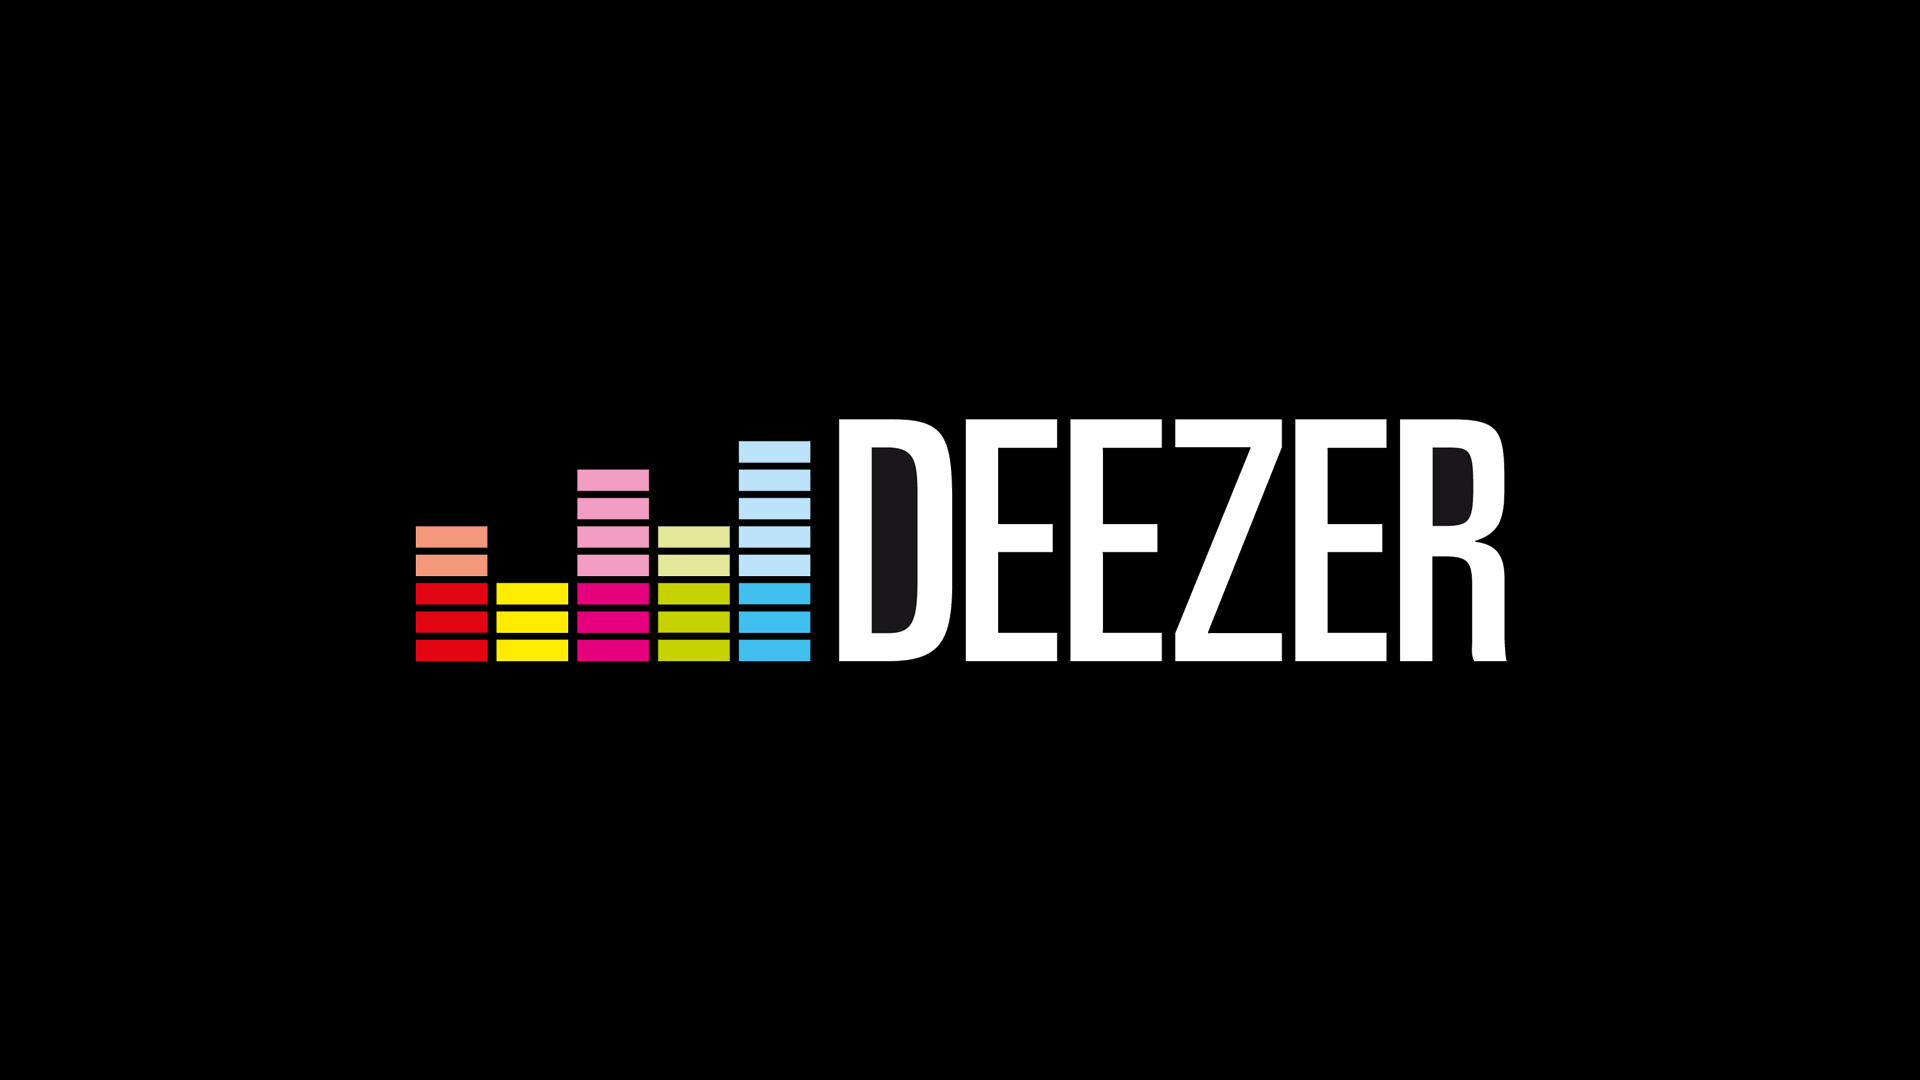 Deezer playlist promotion for 30 days